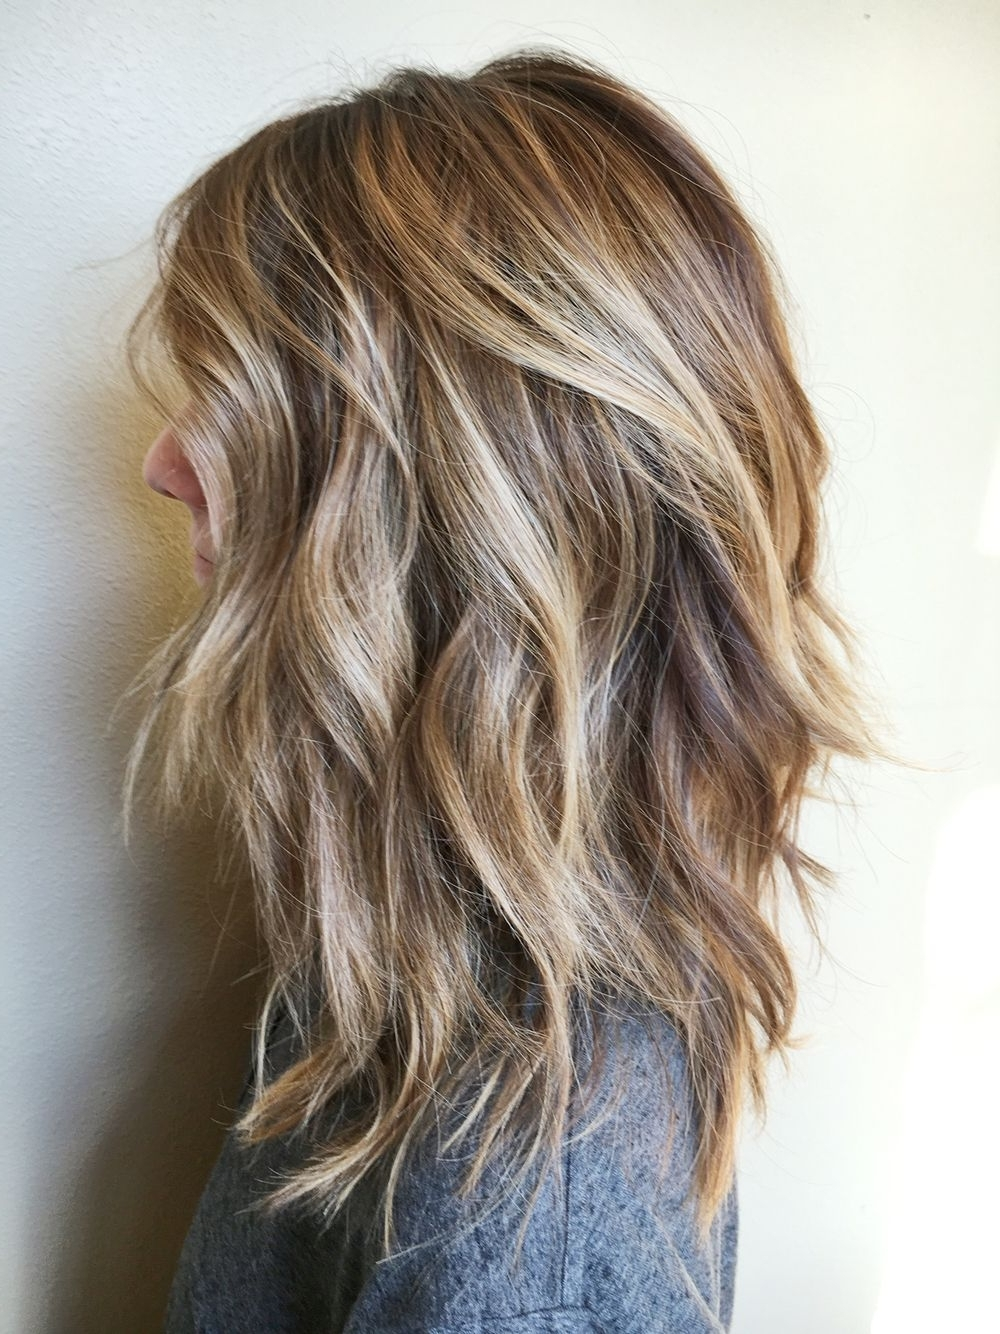 40 Amazing Medium Length Hairstyles & Shoulder Length Haircuts Inside Trendy Balayage Pixie Hairstyles With Tiered Layers (View 3 of 20)